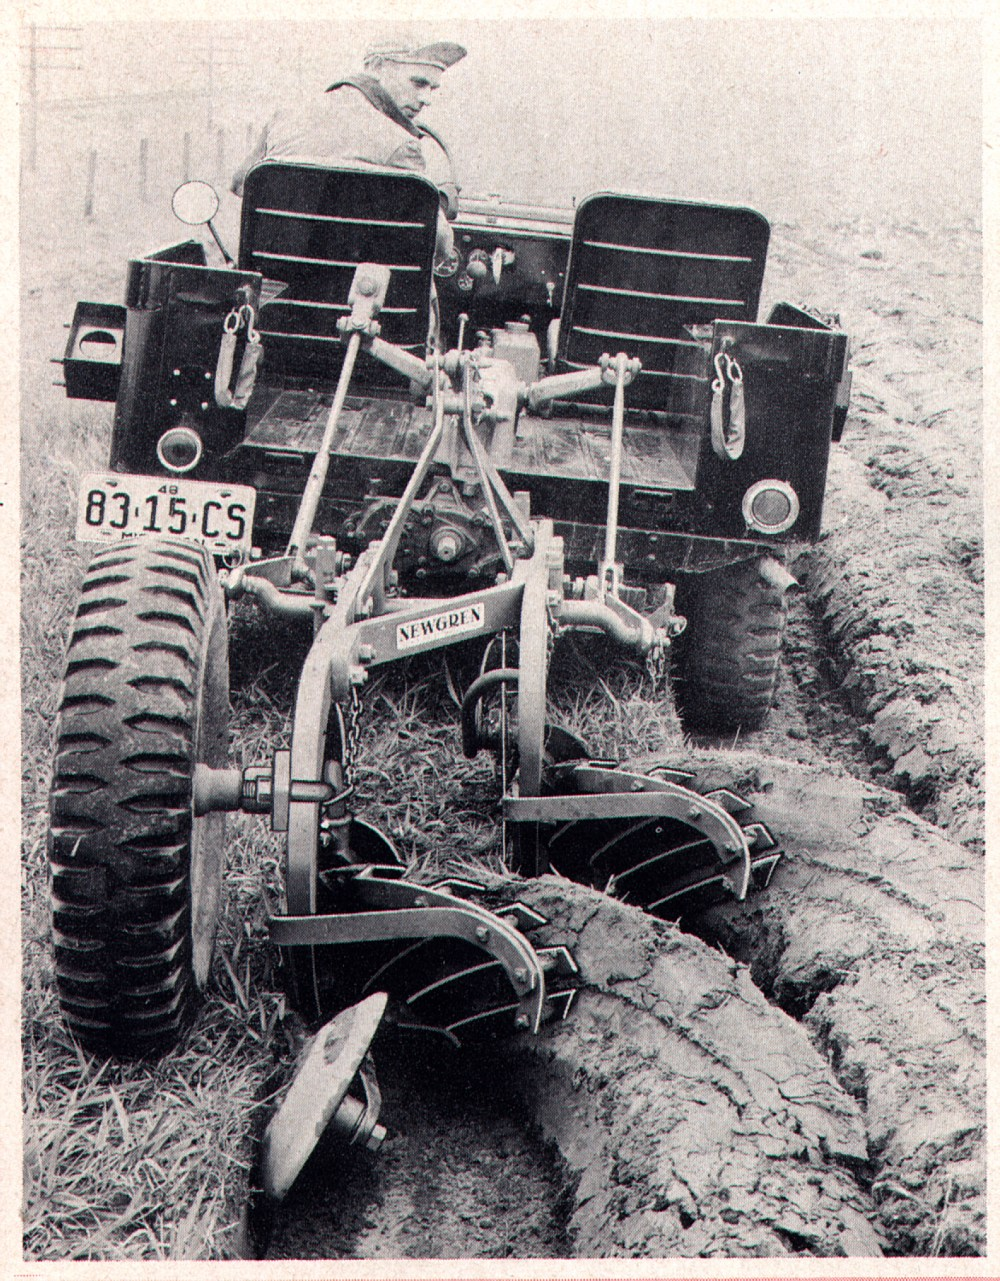 medium resolution of jeep at work a late 40s cj mounting a newgren two bottom plow interestingly it s being used on a monroe hydraulic lift which mounted in the bed of the